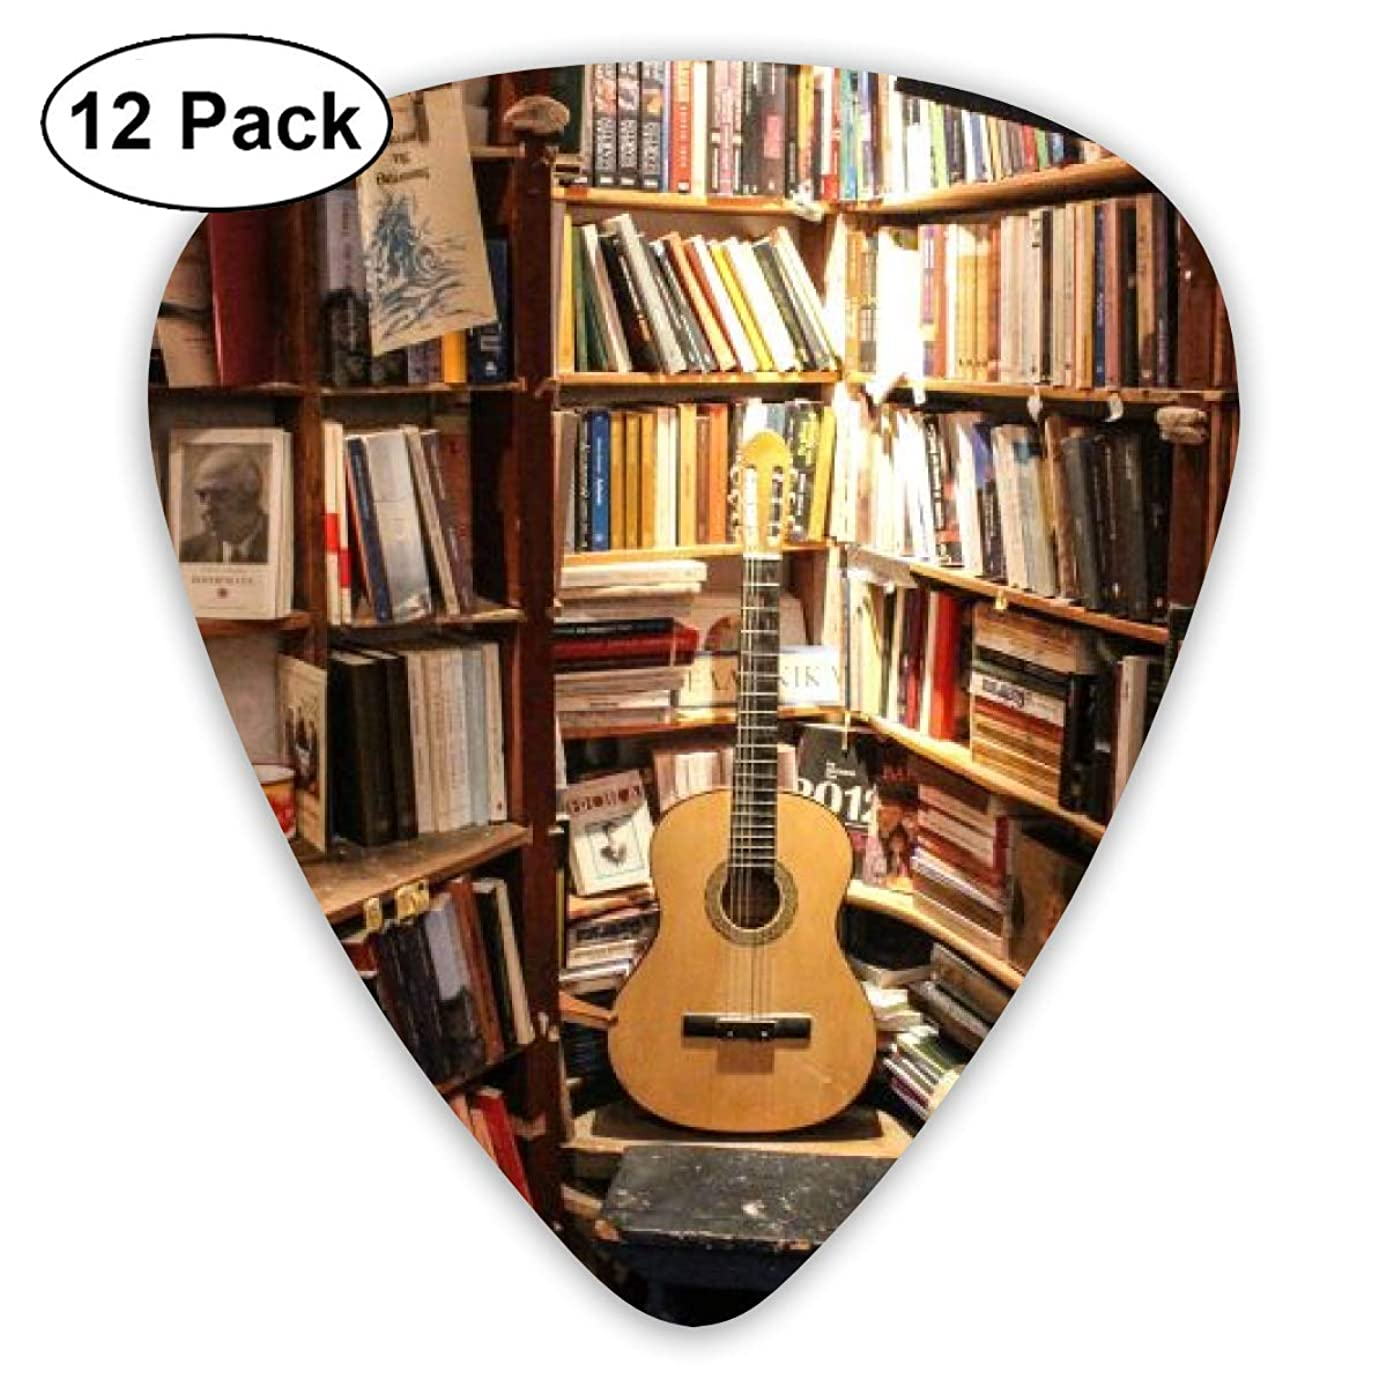 PDIYO Guitar and Books Suitable for Electric Guitars, Acoustic Guitars, Guitar Selection£¨12 Pieces£.